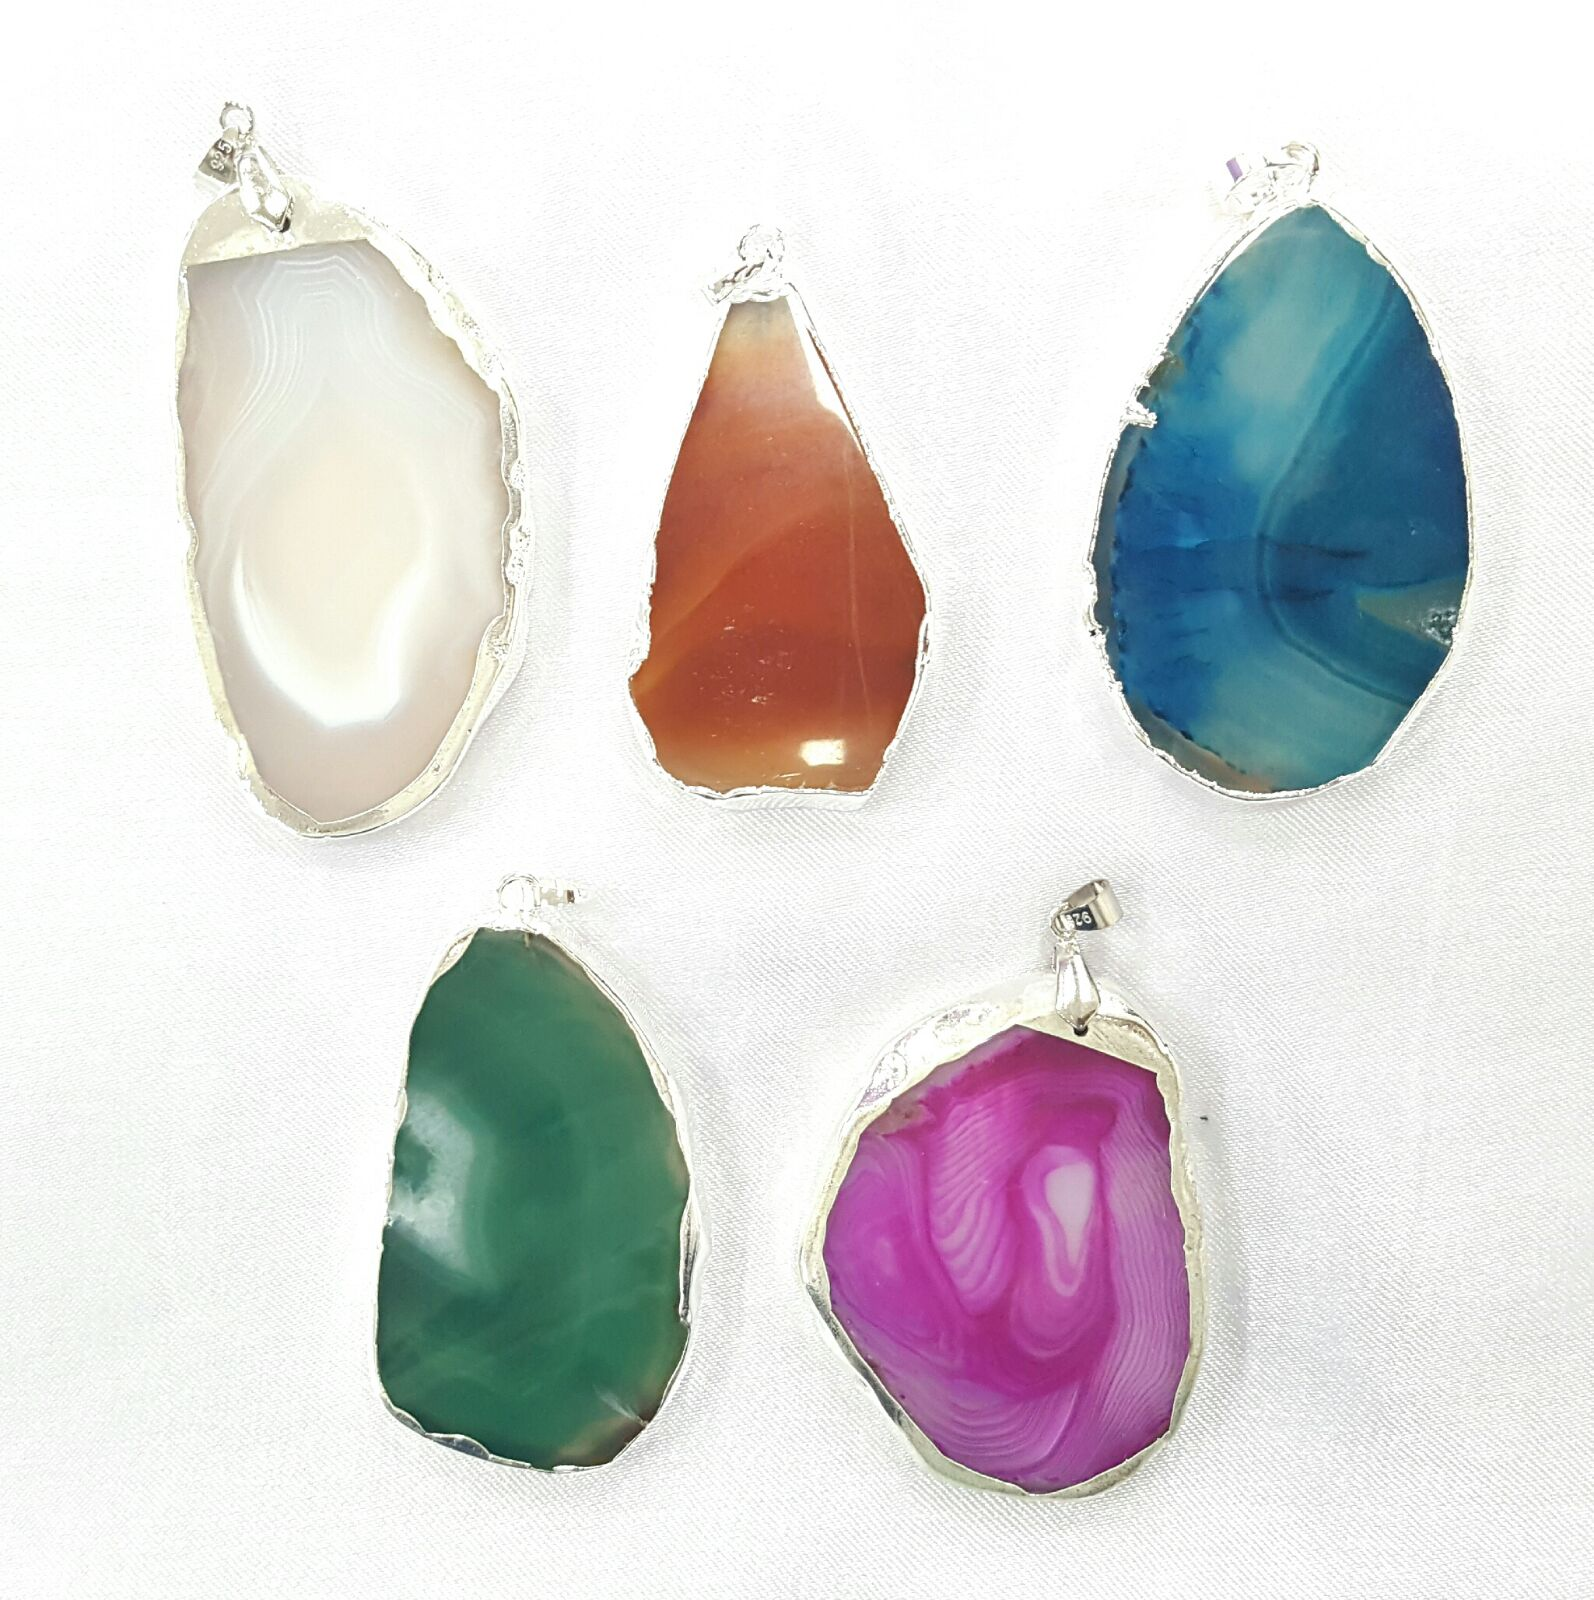 Agate Slice Pendants 5 pc